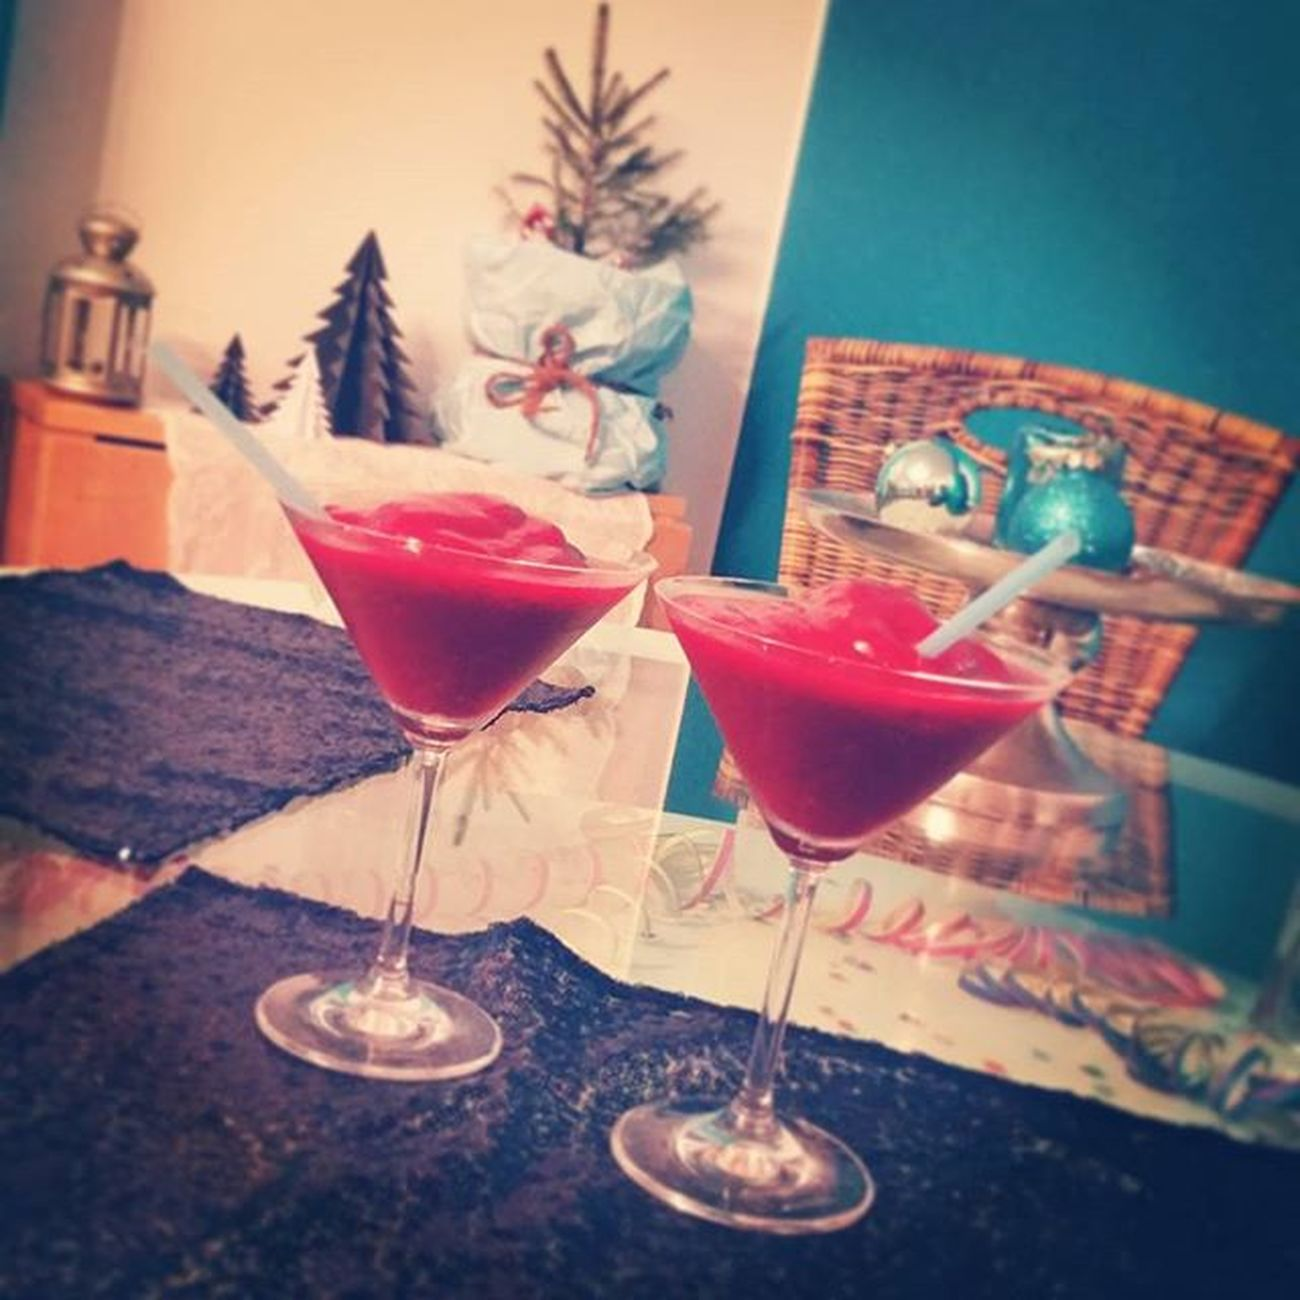 December31 Partyfortwo Frozendaiquiri Drinks Byebye2015 Captainmorgan